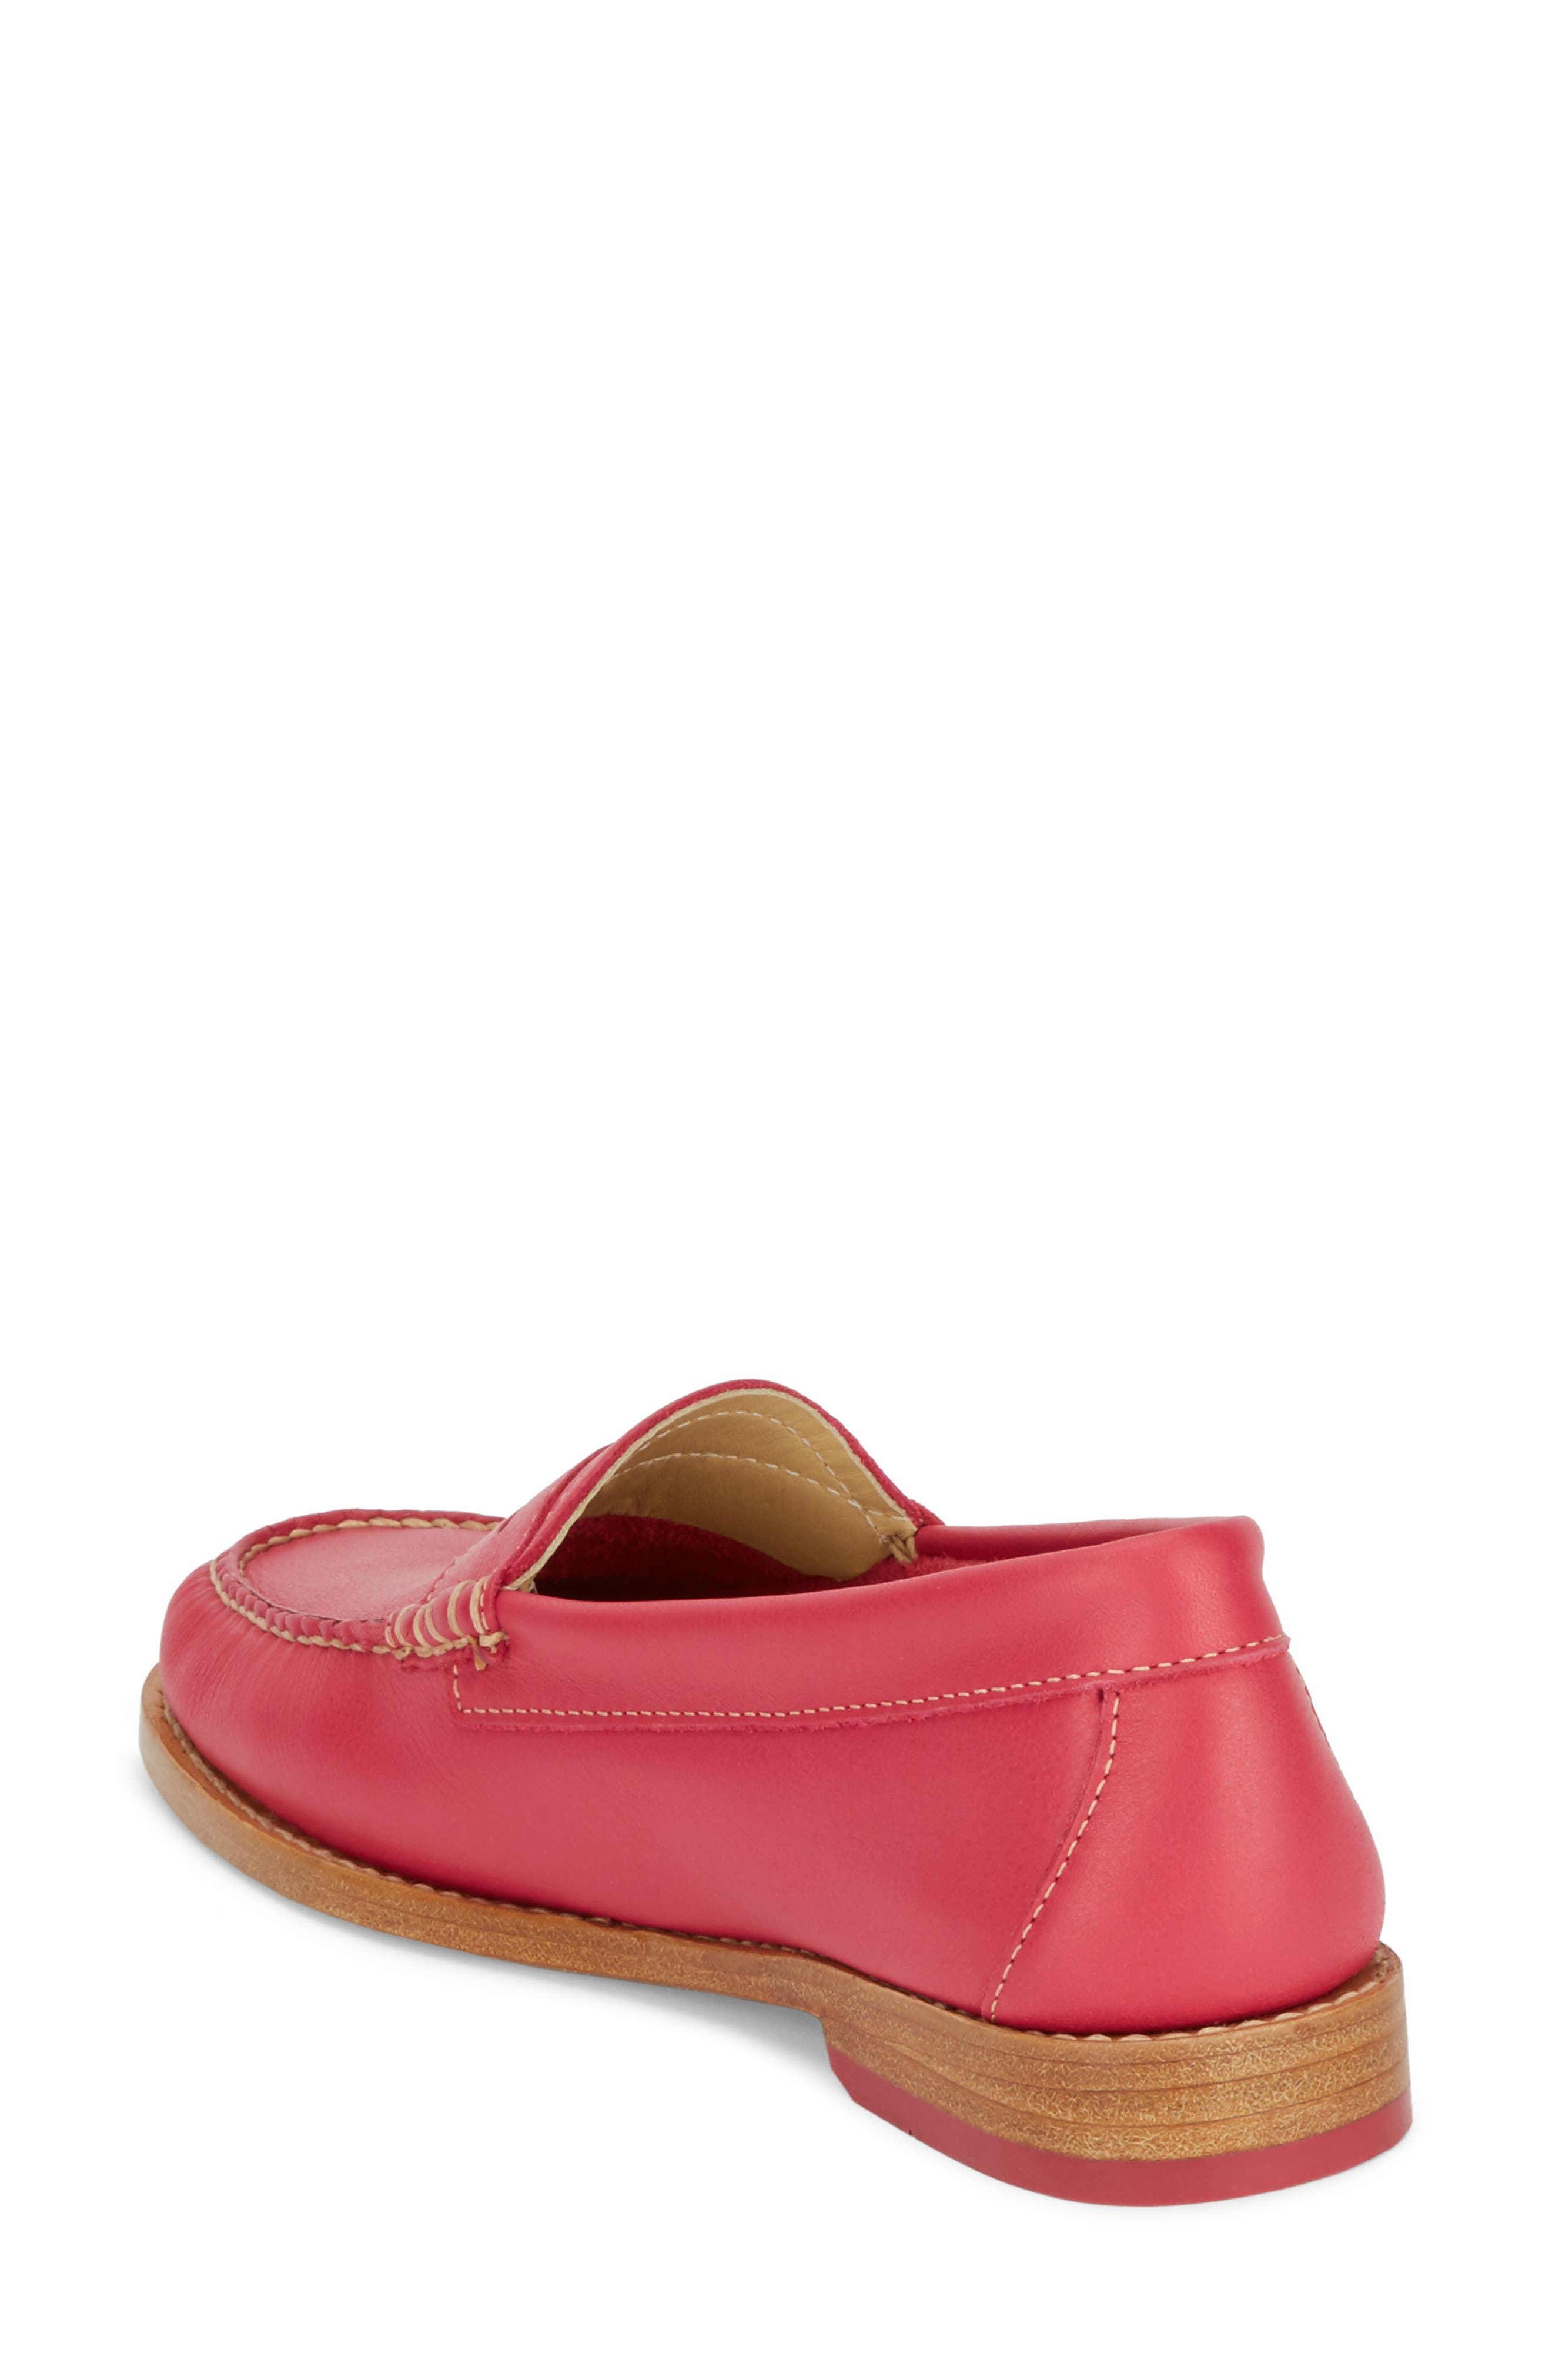 'Whitney' Loafer,                             Alternate thumbnail 2, color,                             BERRY PINK LEATHER